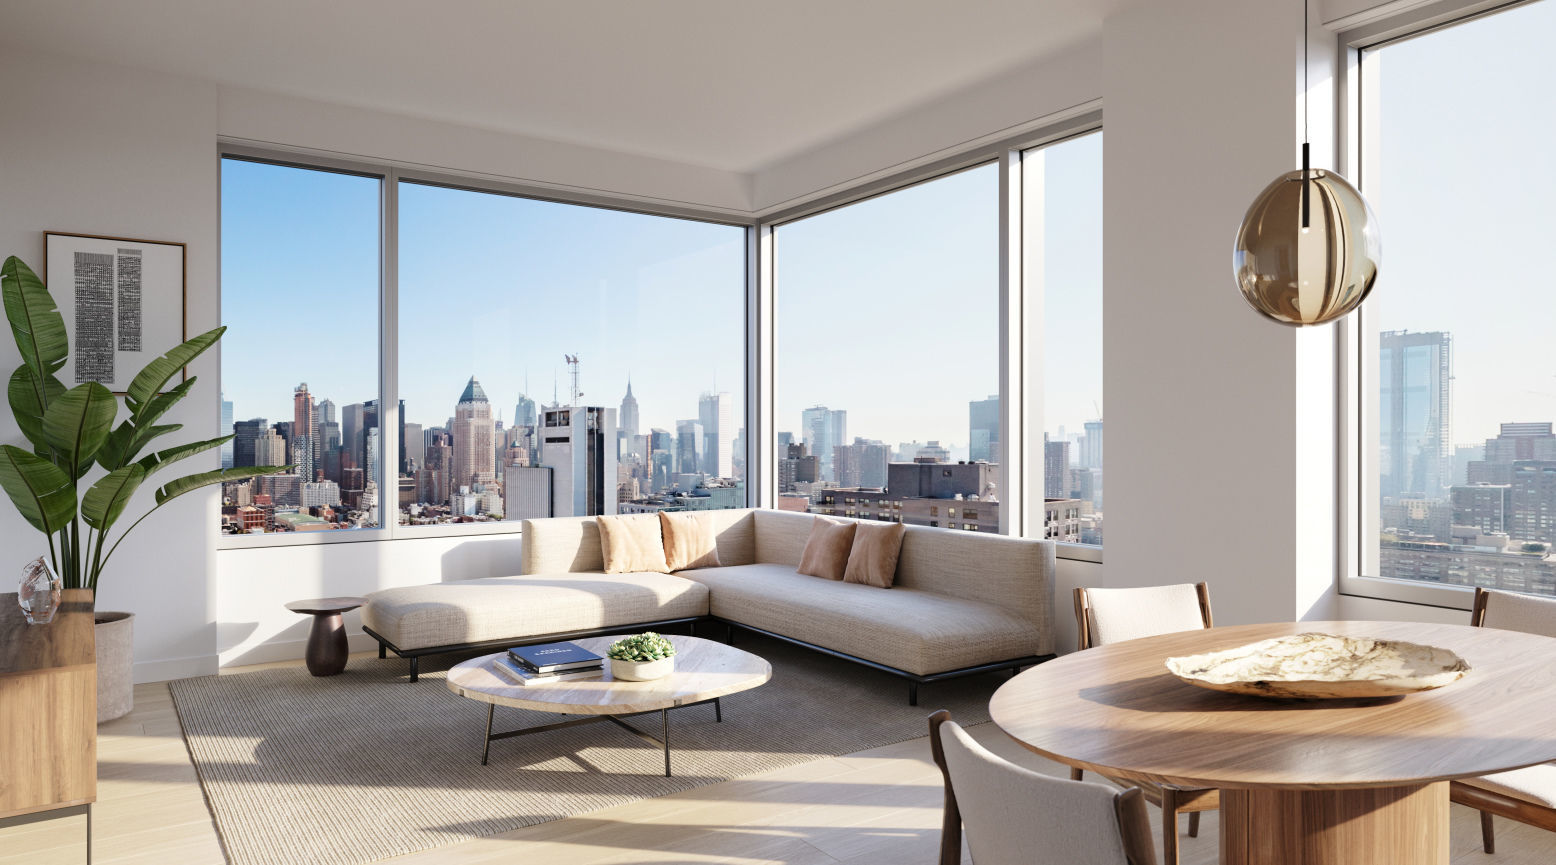 Apartment for sale at 611 West 56th Street, Apt 4-A